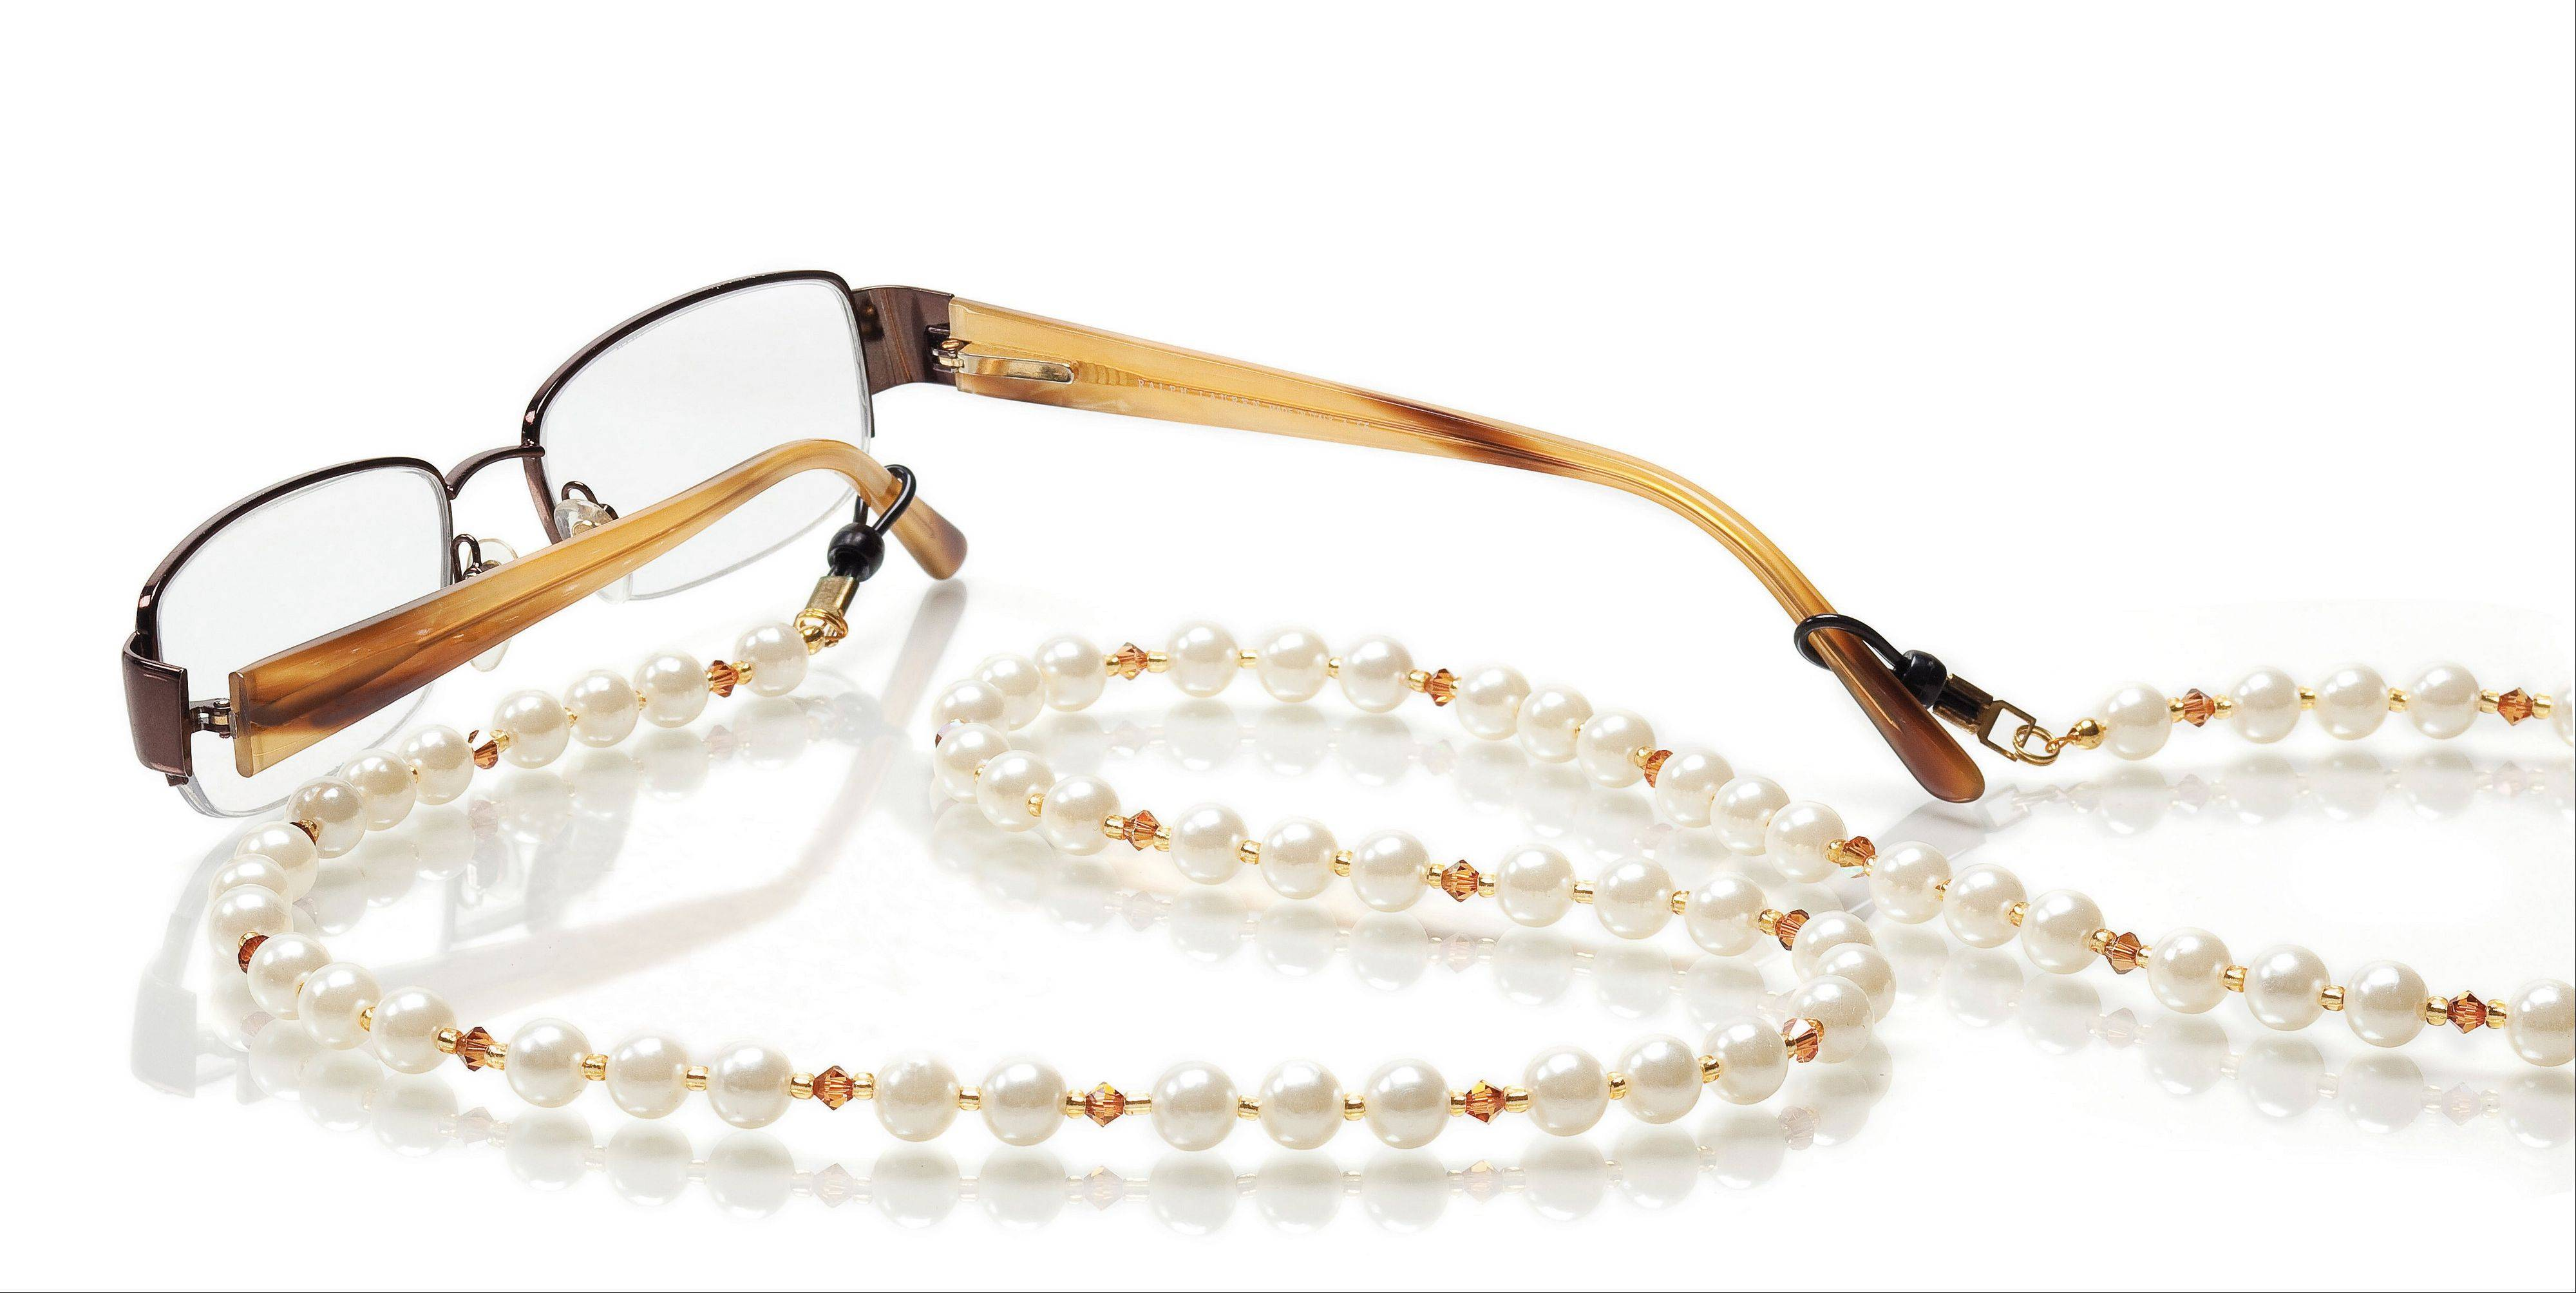 """Eyeglass chains are a great way to accentuate your personality while also providing a utilitarian use,"" keeping glasses safe and handy, says Michelle Sacia, a craft specialist with Jo-Ann Fabric and Craft Stores."